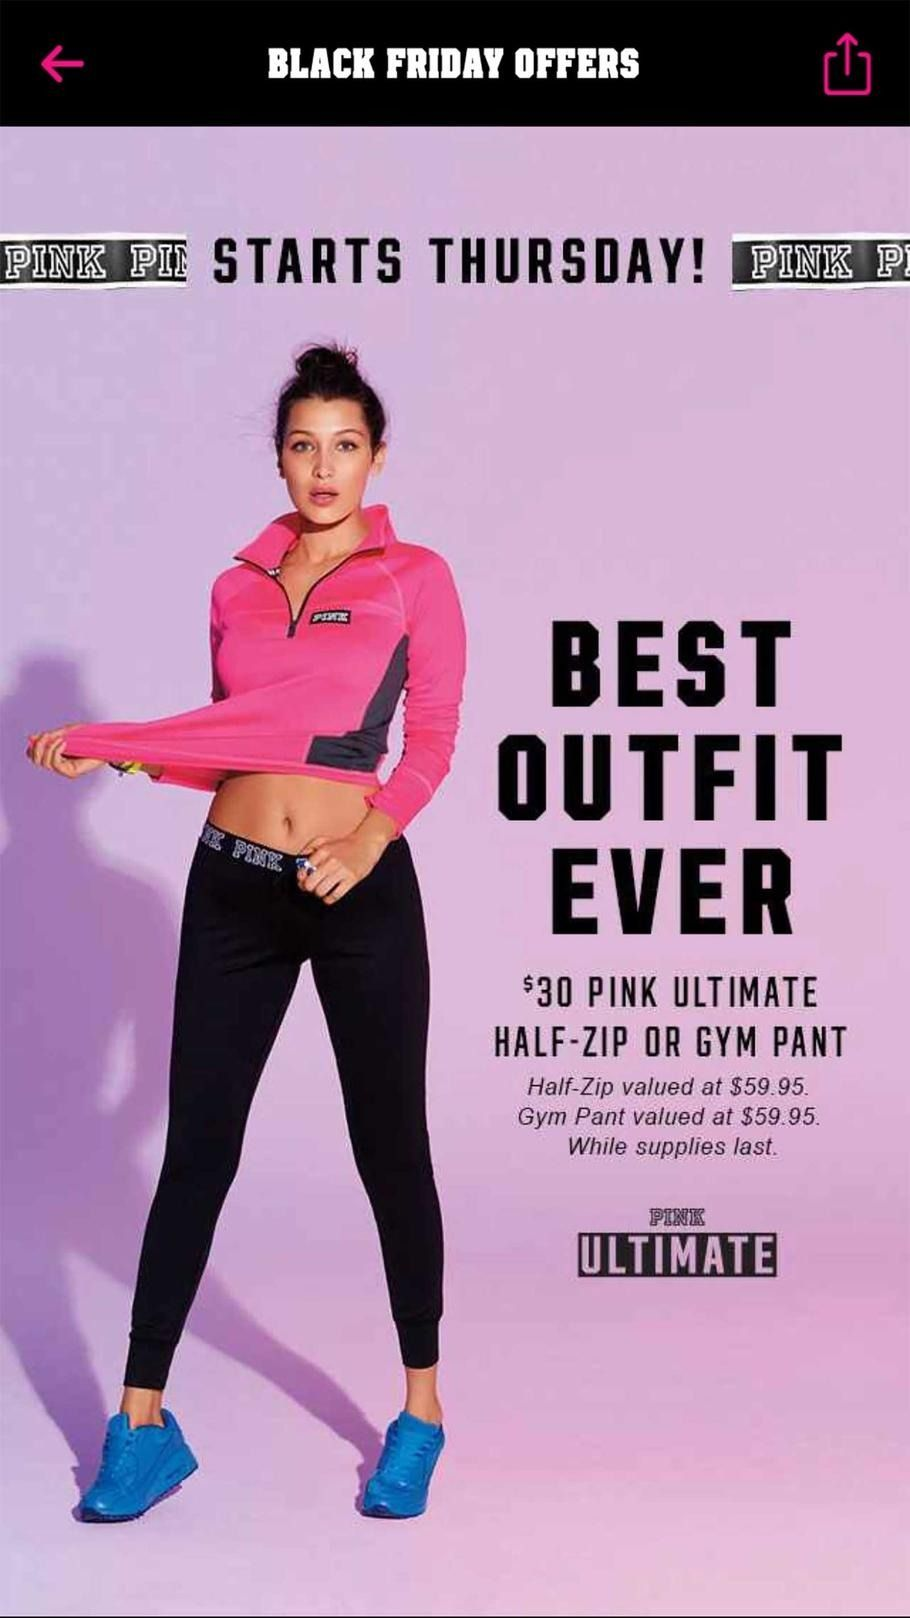 551eb8b9af5 Victoria s Secret 2015 Black Friday Ad...check out the 5 pages of  BlackFriday  deals.